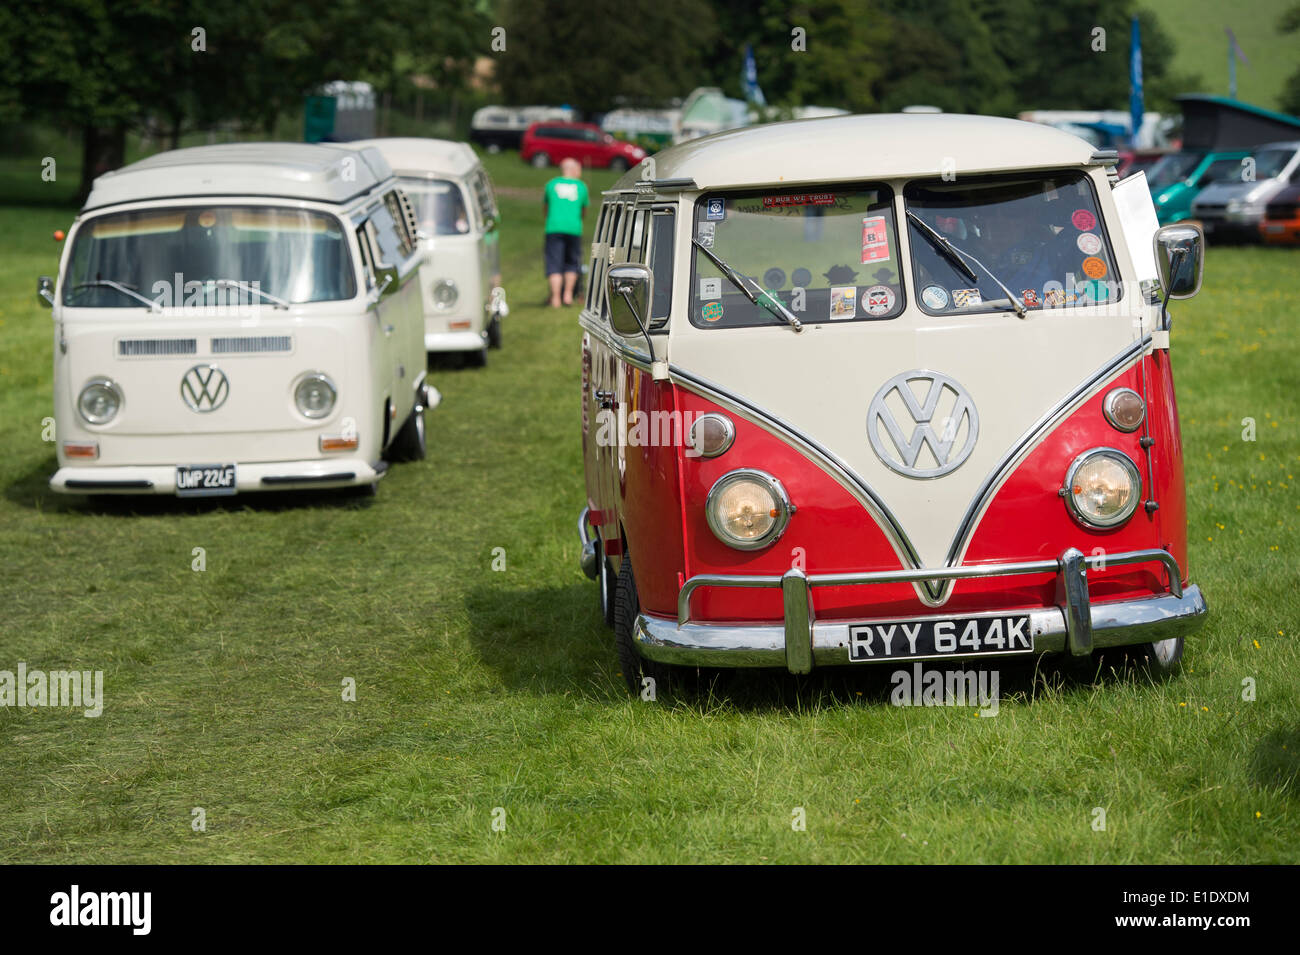 1971 Red White VW Split Screen Volkswagen Camper Van At A Show England